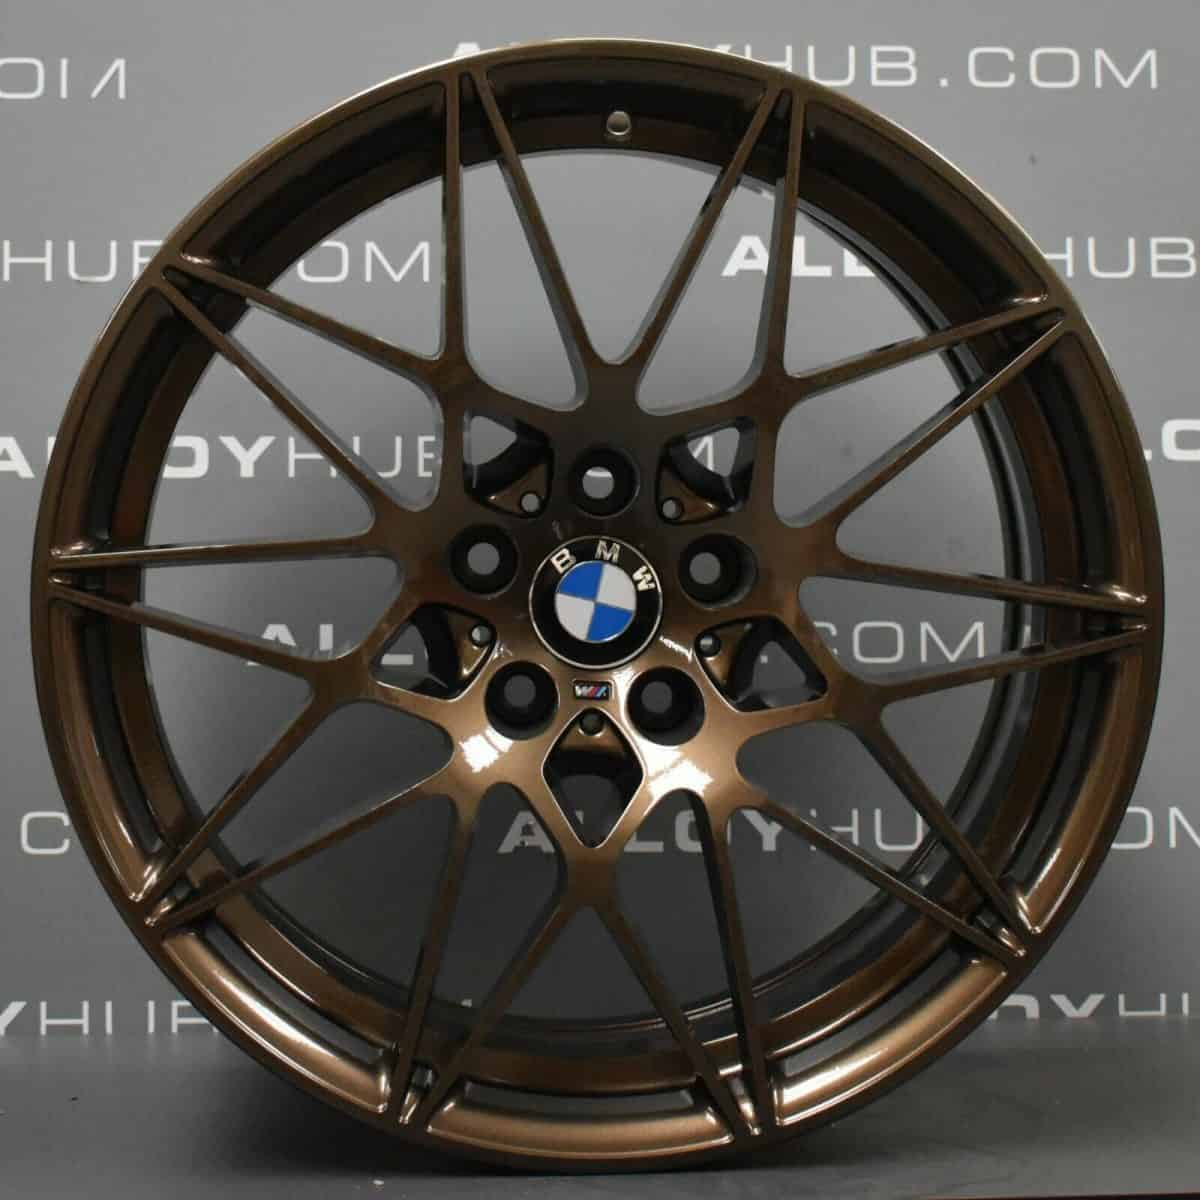 """Genuine BMW 666M Sport Competition M3 M4 F80 F82 20"""" Inch Alloy Wheels with Bronze Finish 36112287500 36112287501"""